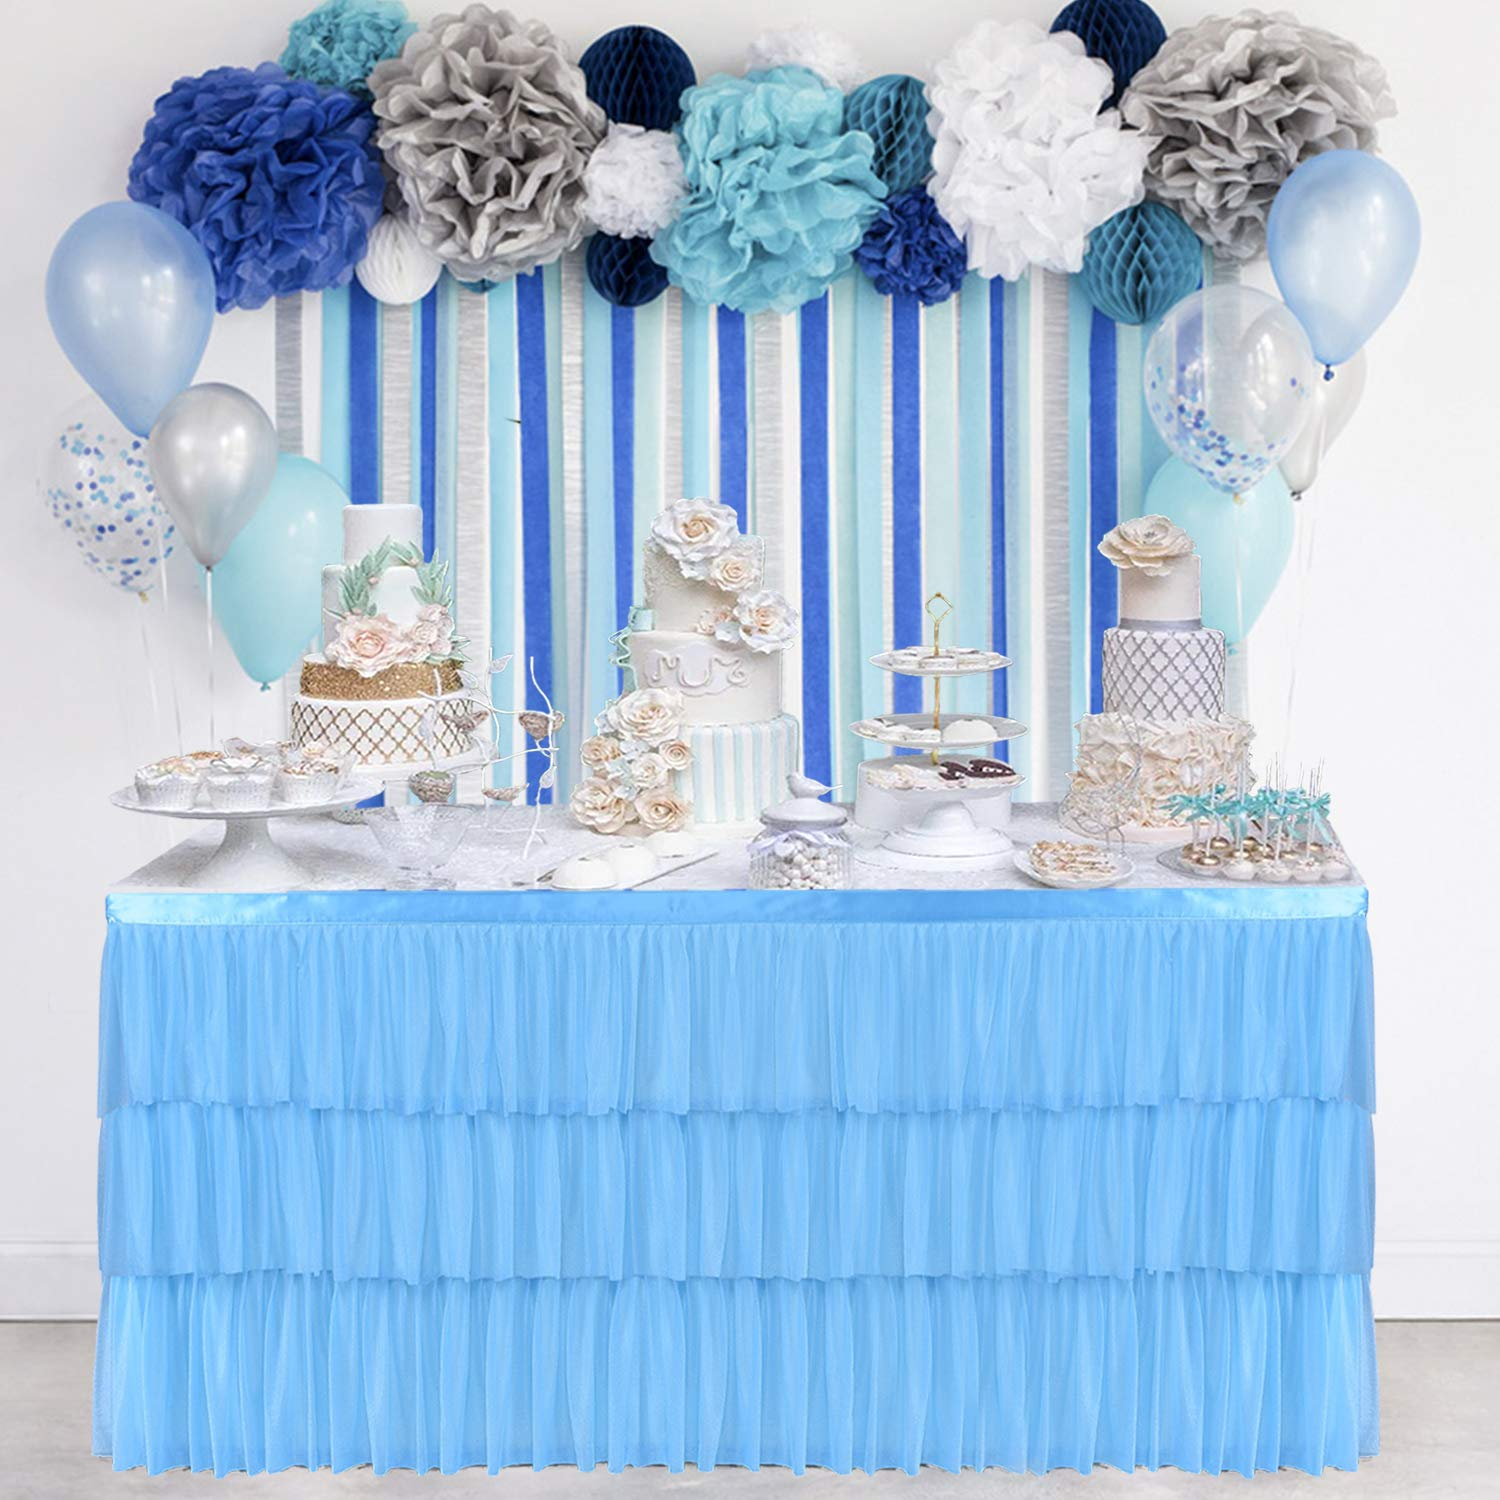 9ft Blue Tulle Table Skirt 3 Tier Mesh Fluffy with Soft Dust Lining Table Tutu Skirting for Rectangular or Round Table for Birthday, Wedding Party Supplies and Special Occasion Decor(L108Inch×H30Inch) by CO-AVE